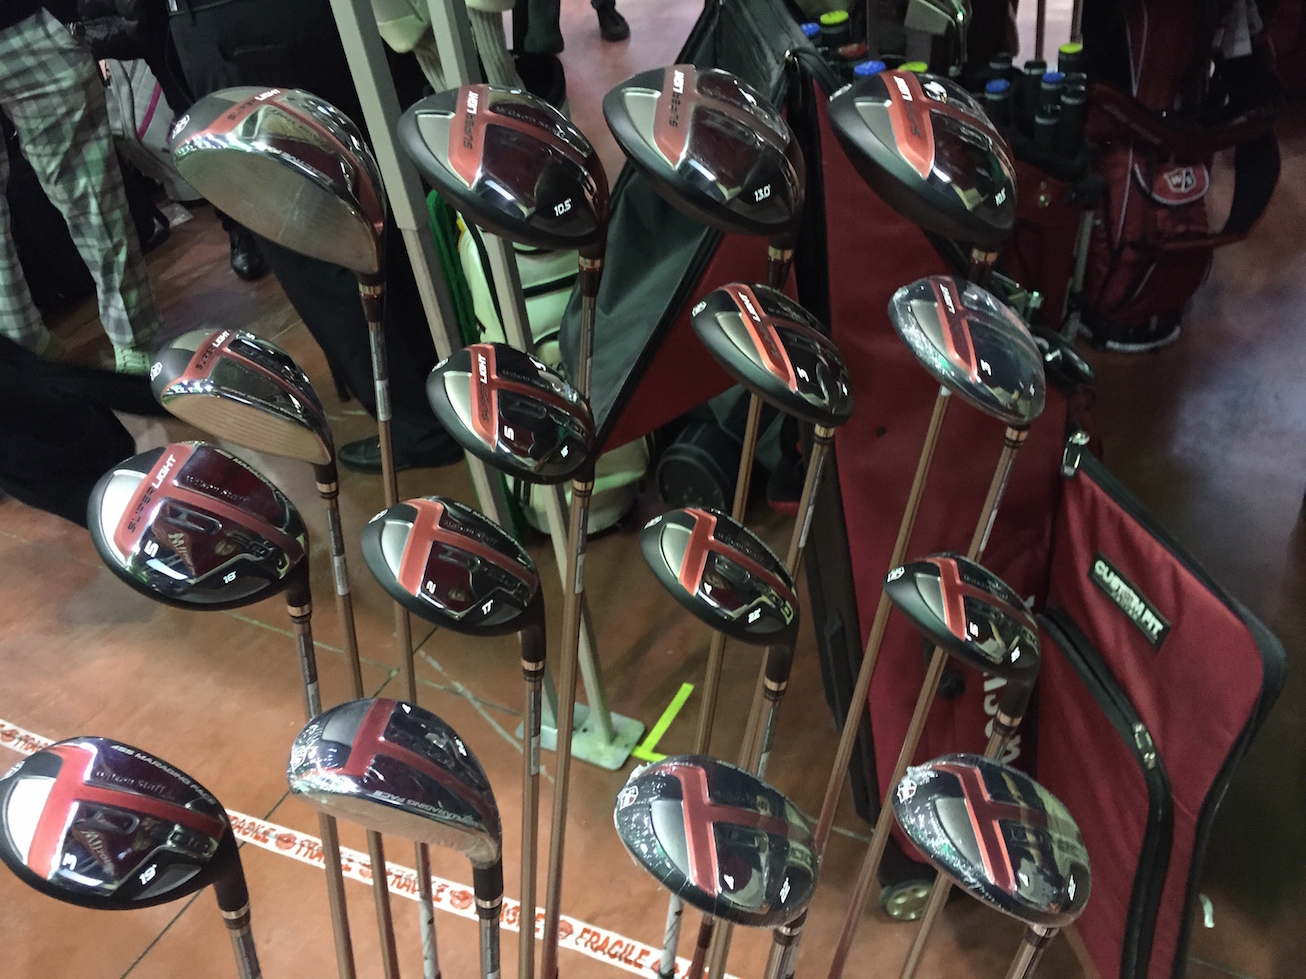 Fiera del Golf Parma 2015 le foto ed i video di Italian Golf Show e le prove dei materiali26 - Fiera del Golf Parma: le foto ed i video di Italian Golf Show